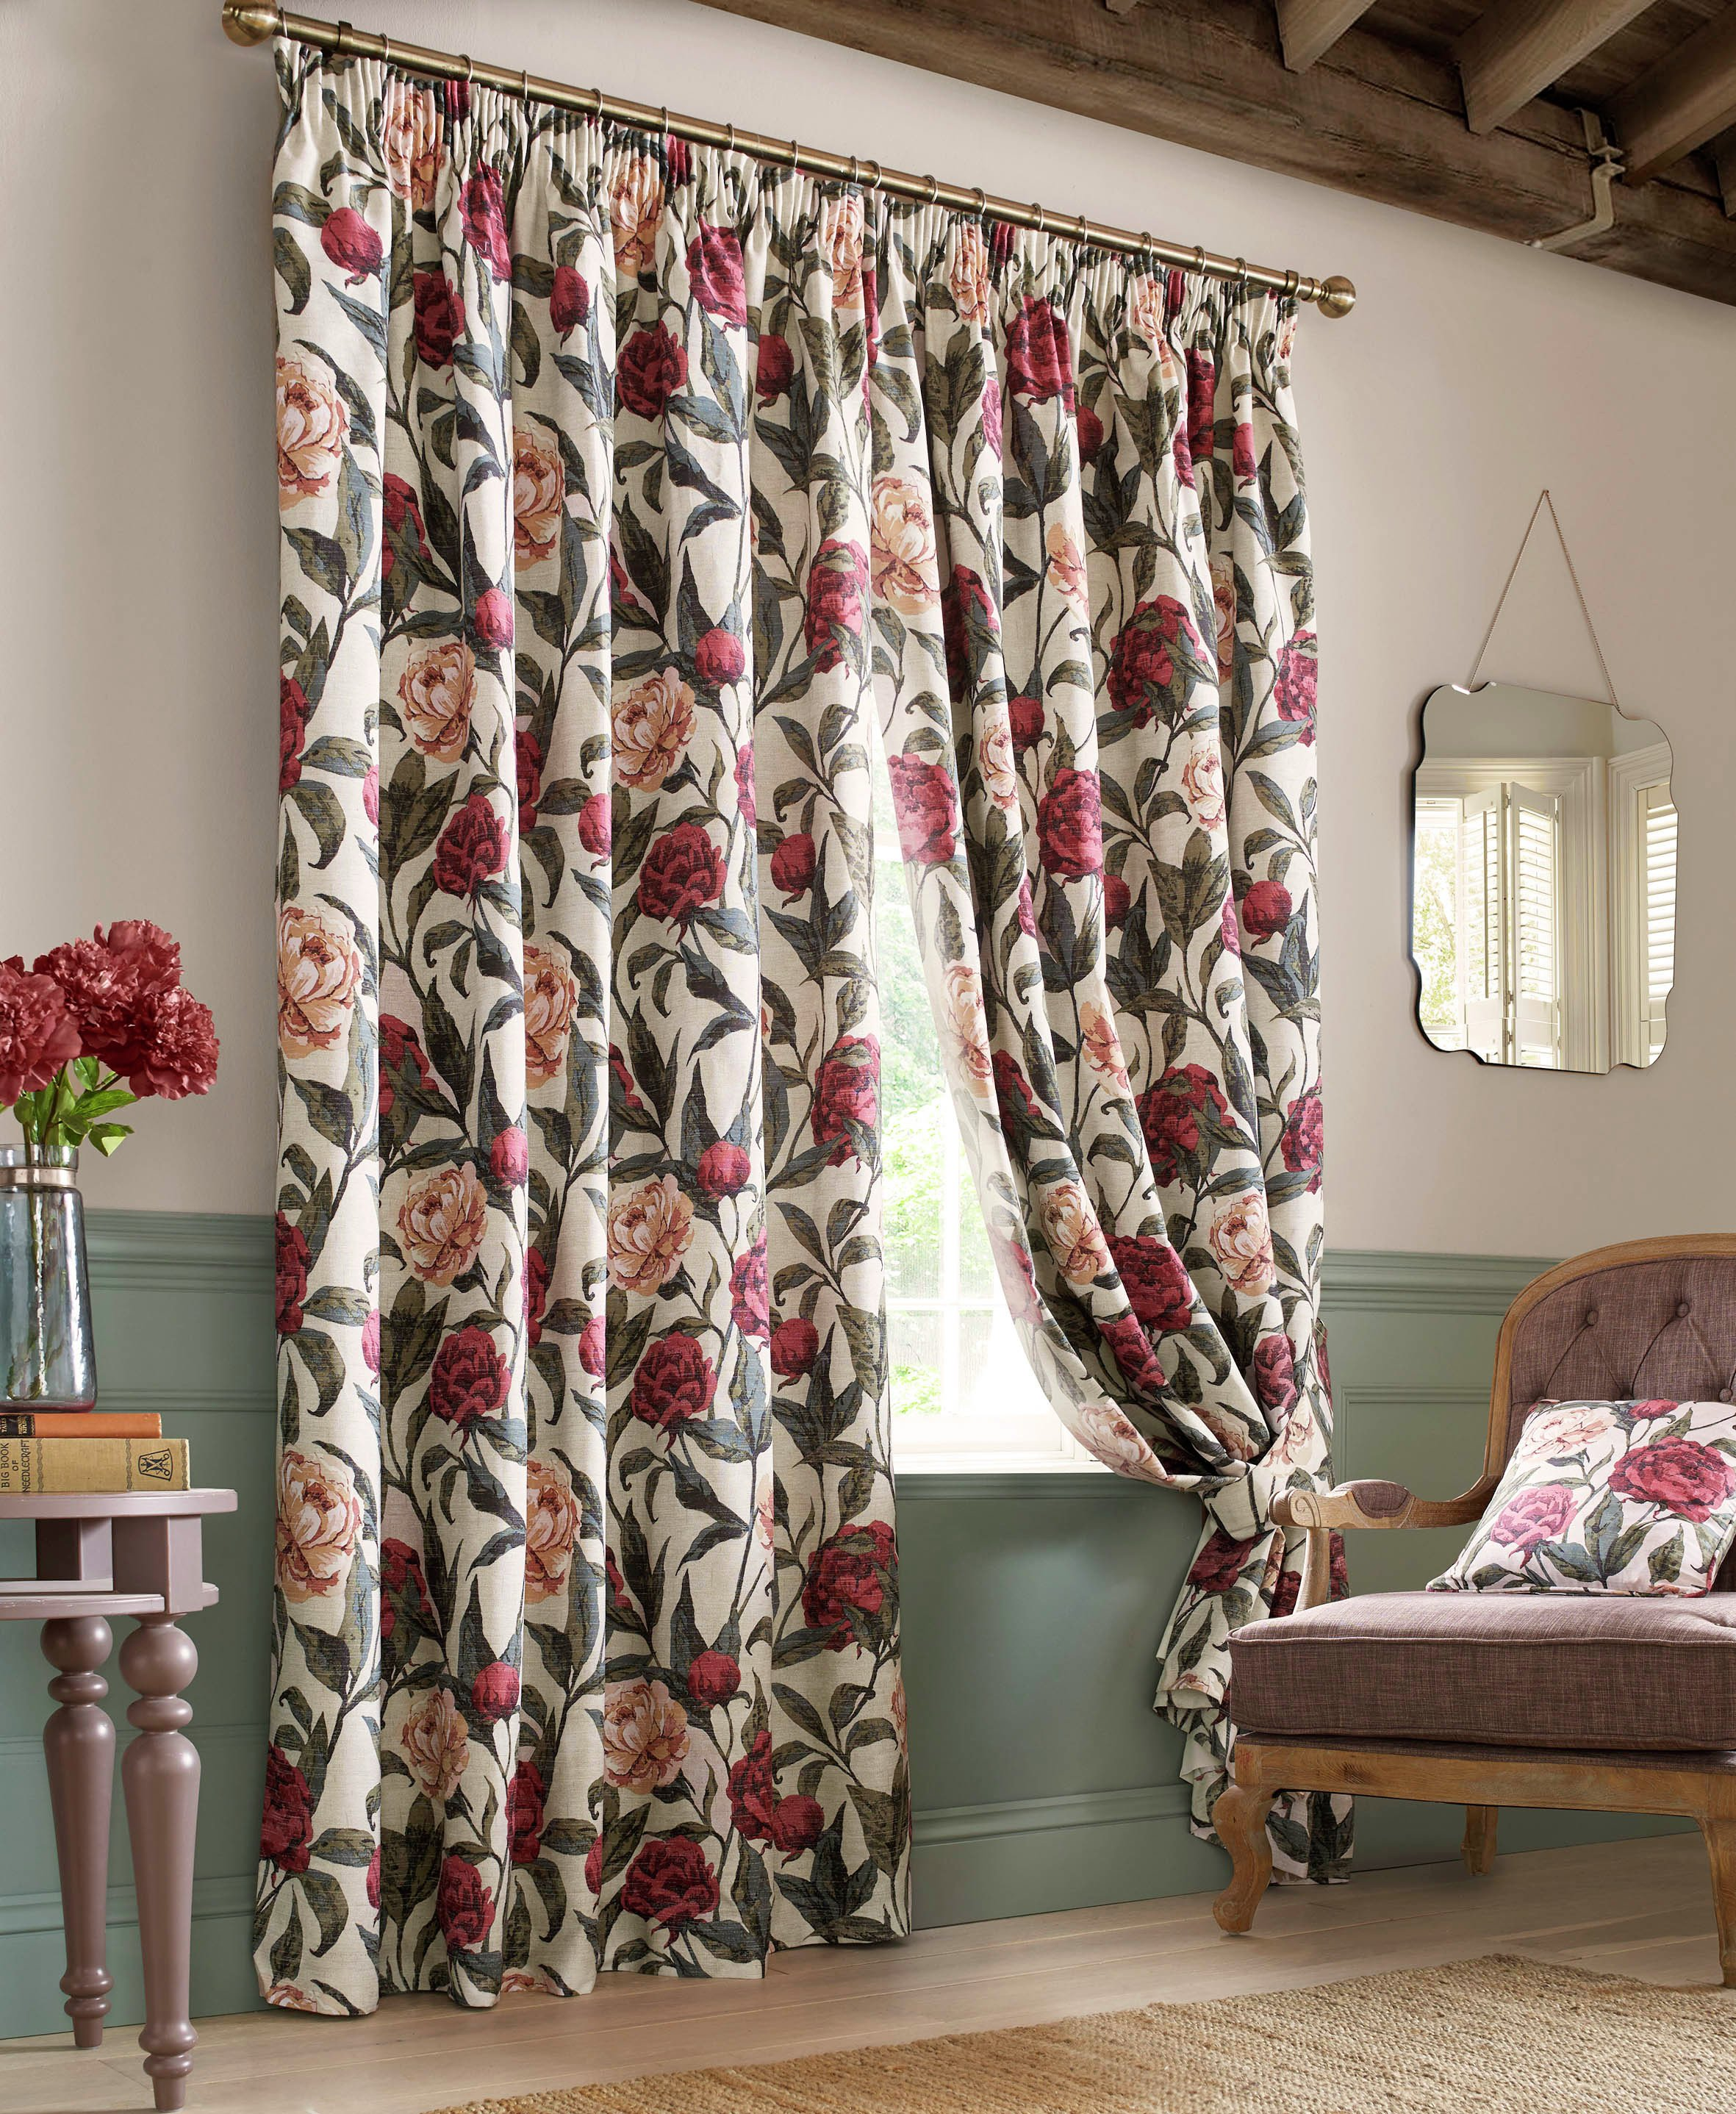 Floral Pencil Pleat Curtains - 117x137cm - Multicoloured.